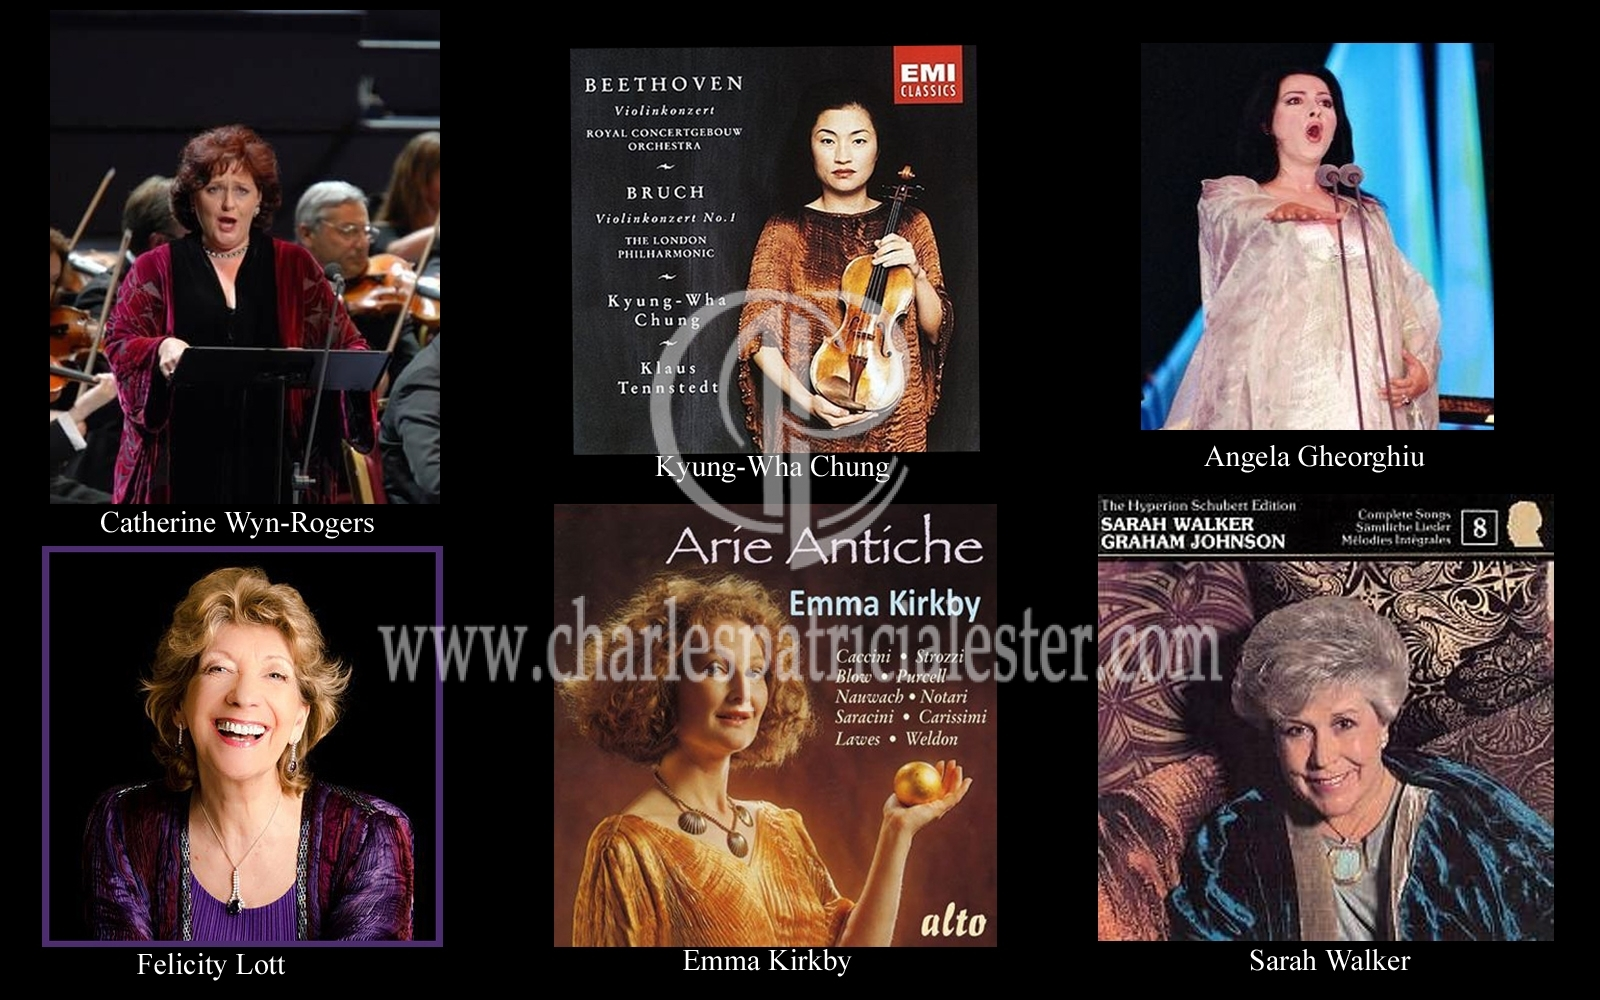 Opera and classical musicians in designs by Charles and Patricia Lester